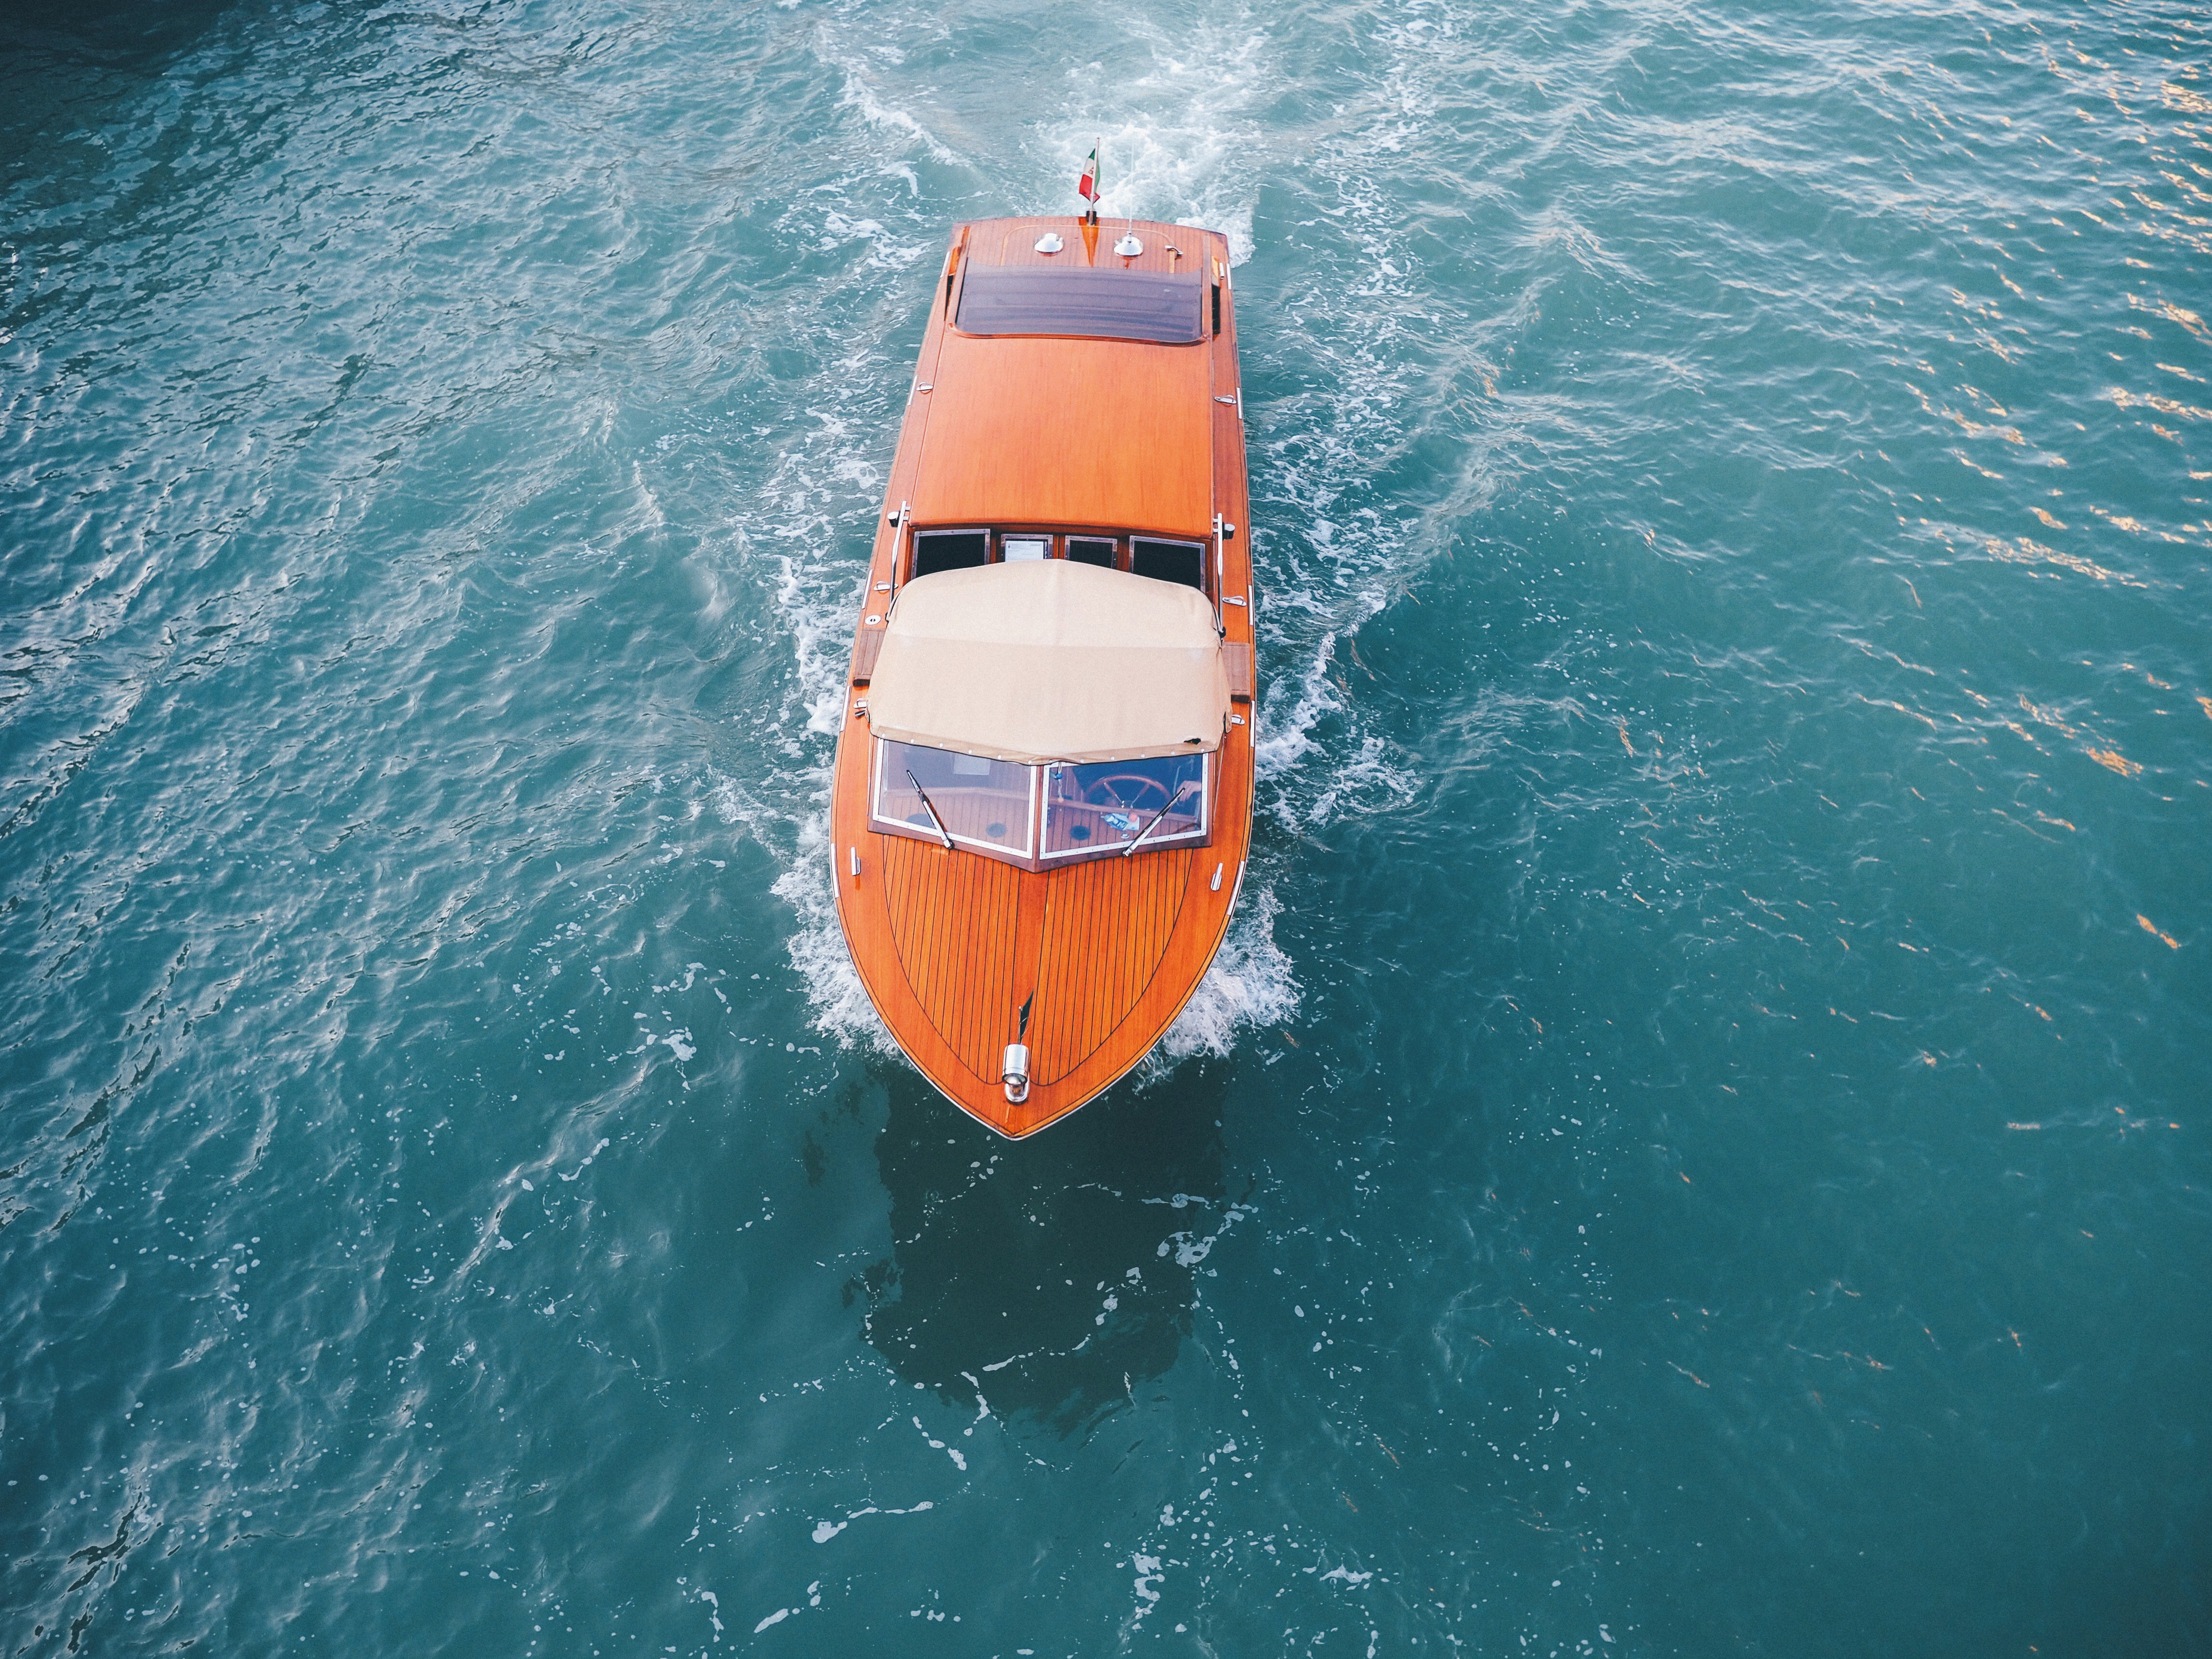 brown-yacht-on-body-of-water-3518400